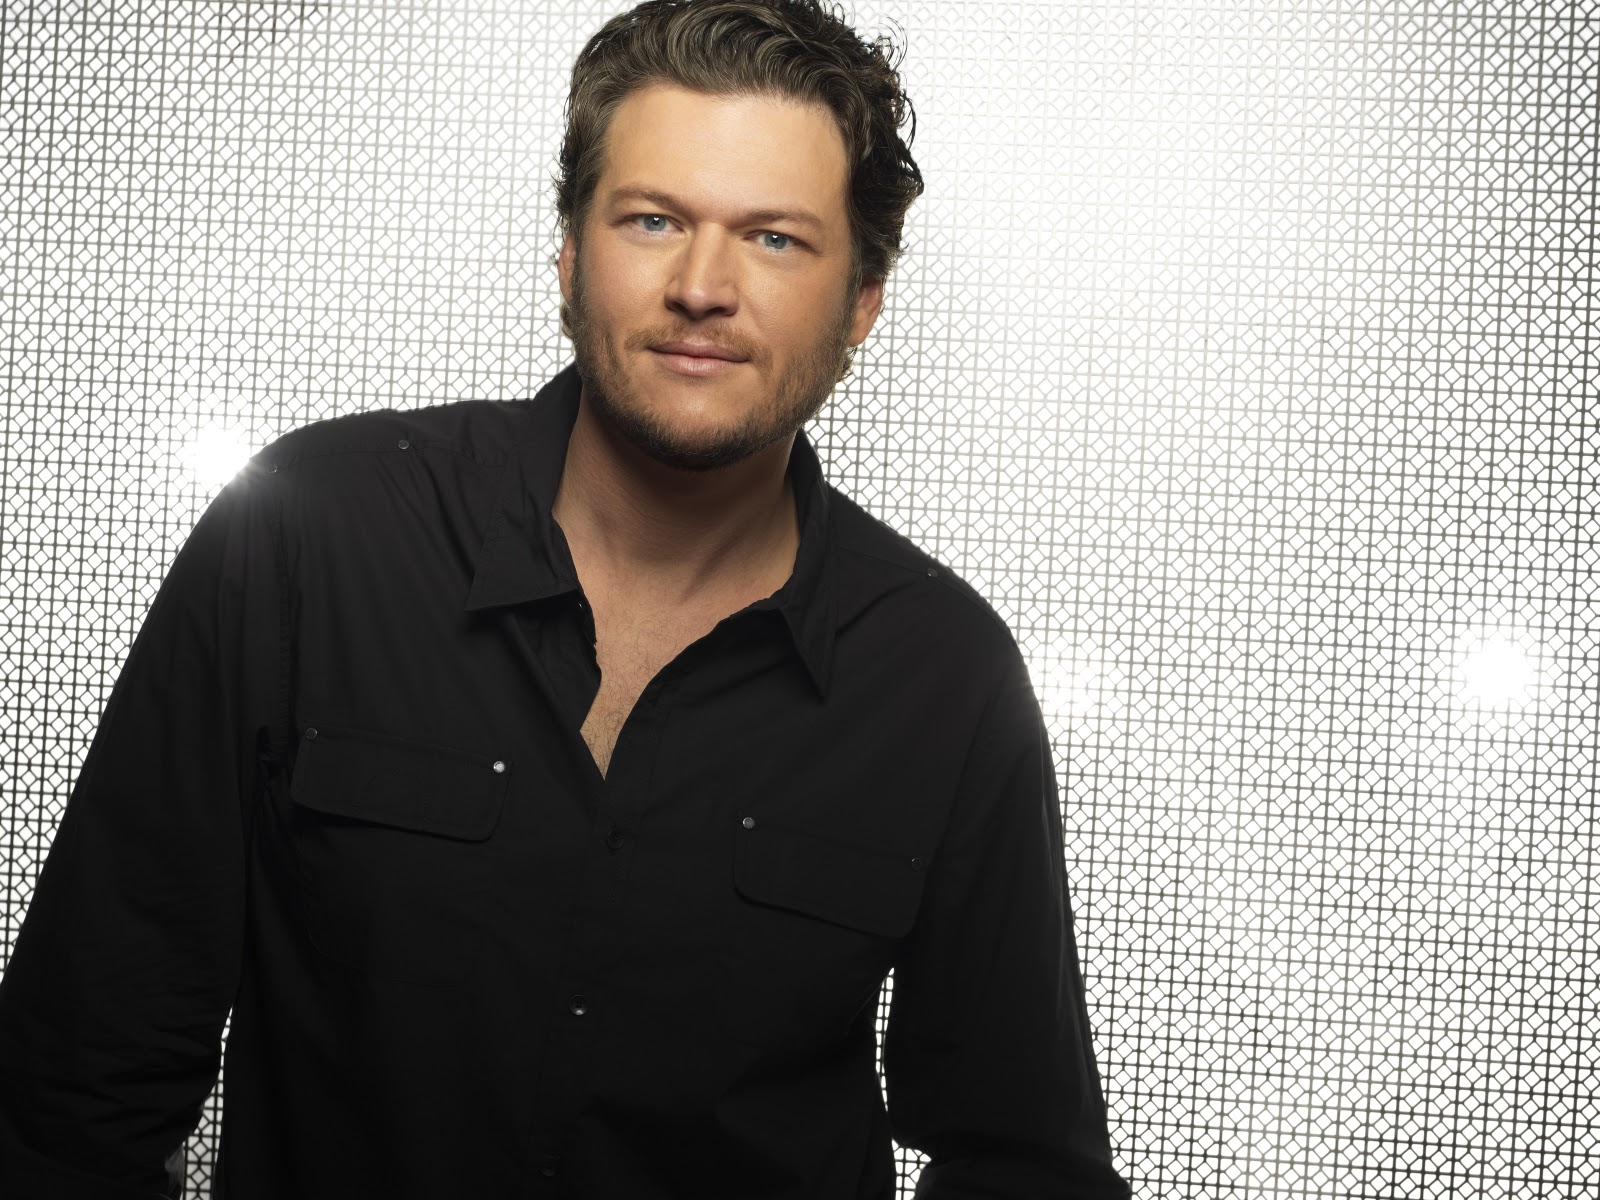 Blake Shelton Style - HD Celebrity Wallpapers - Blake Shelton Style